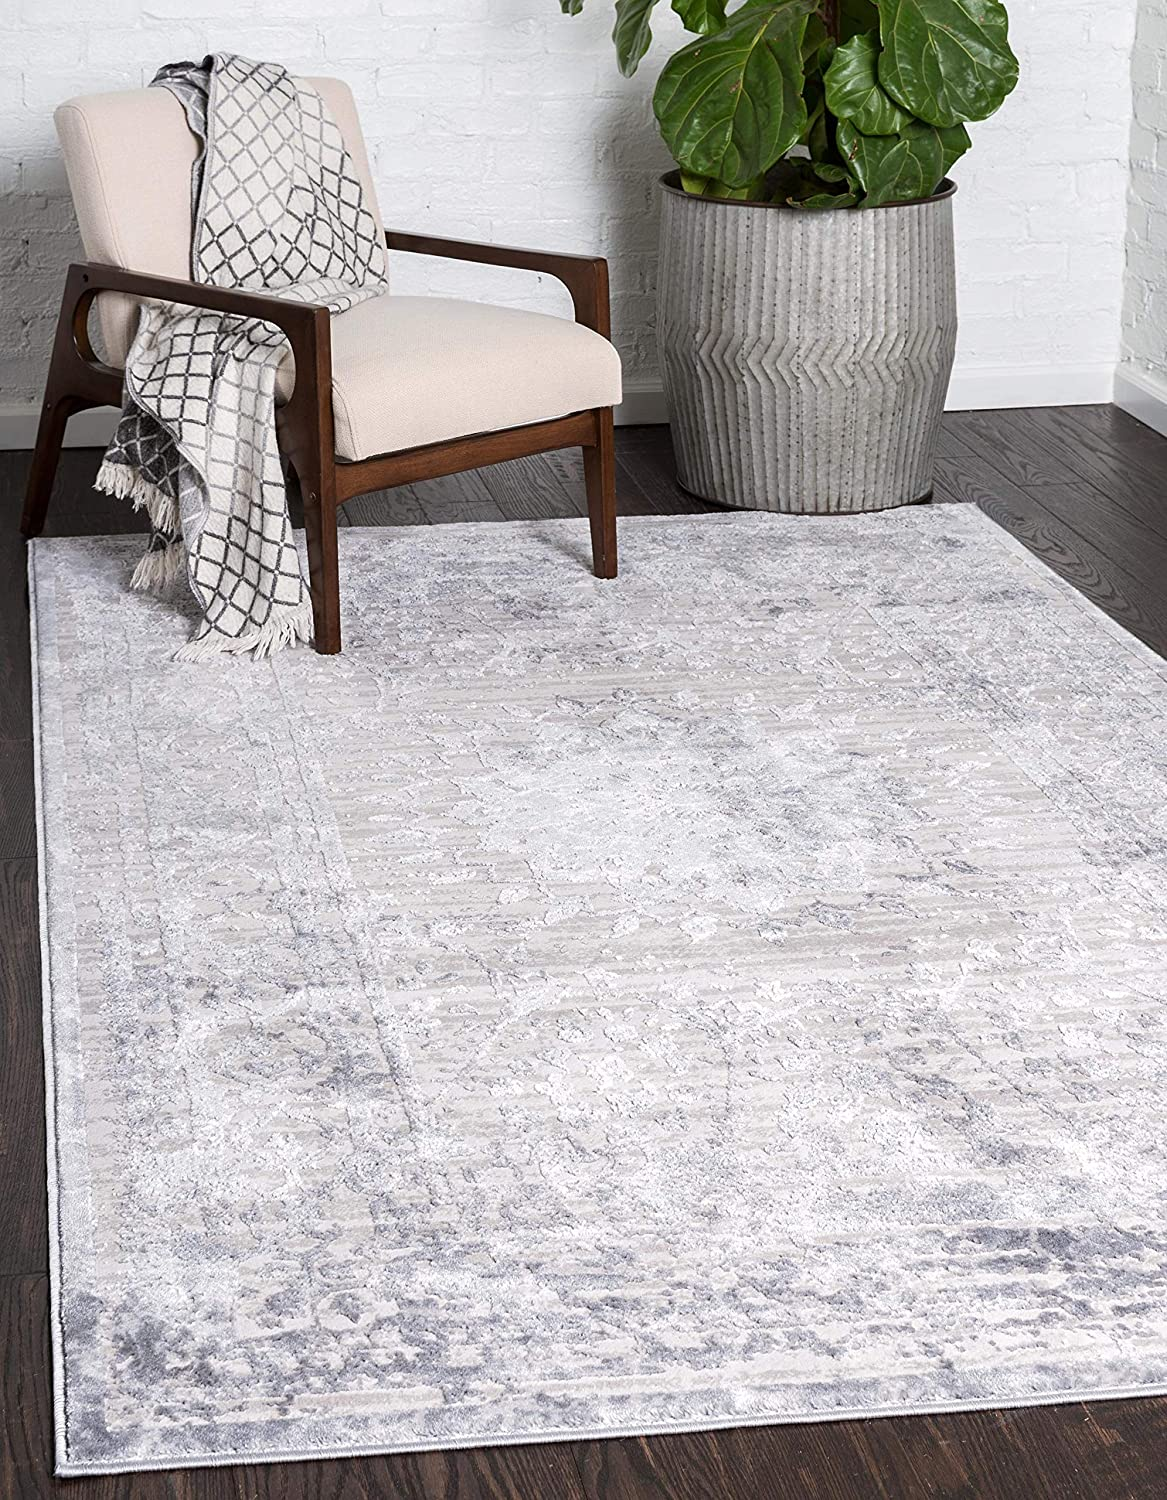 Unique Loom Aberdeen Collection Textured Traditional Vintage Tone Area Rug, 9 x 12 Feet, Gray/Ivory